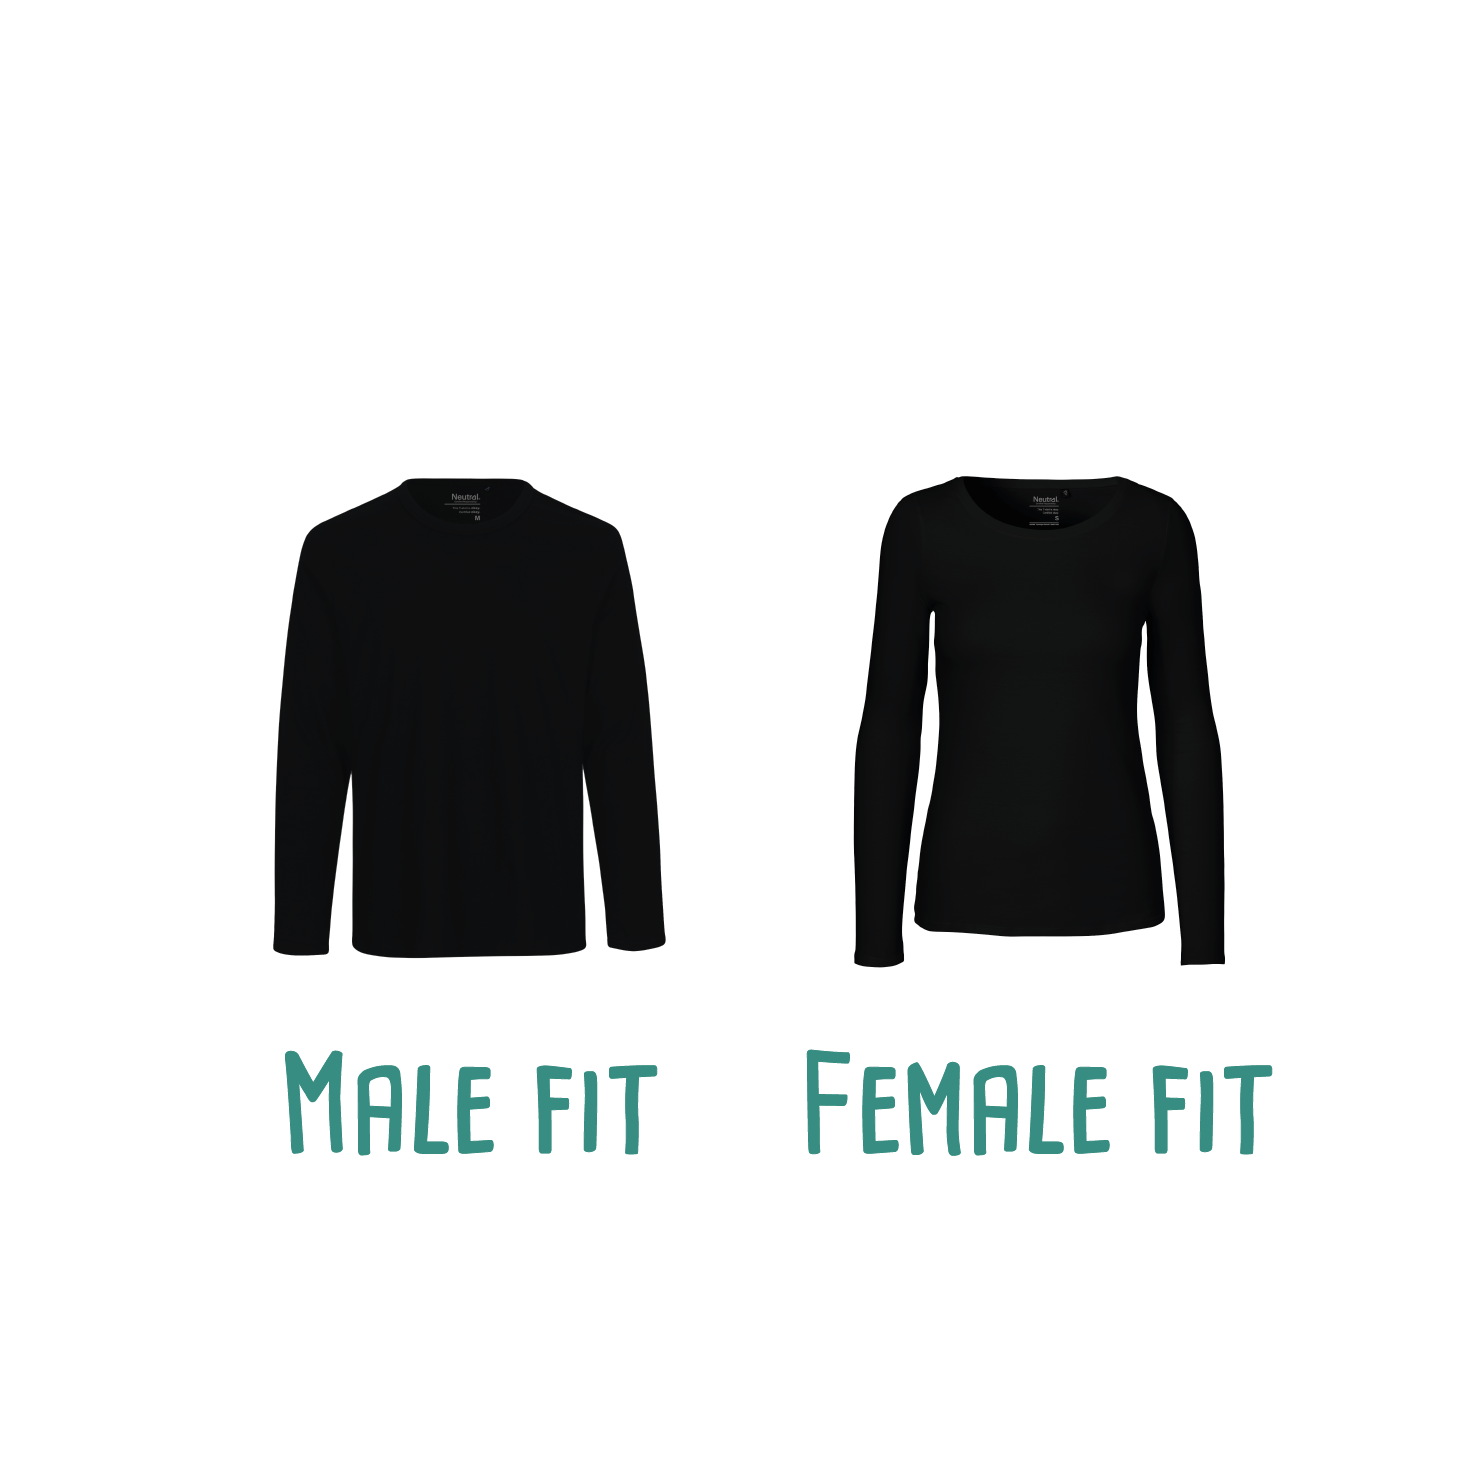 Difference between male or female fit of adult shirts with long sleeves by KMLeon.